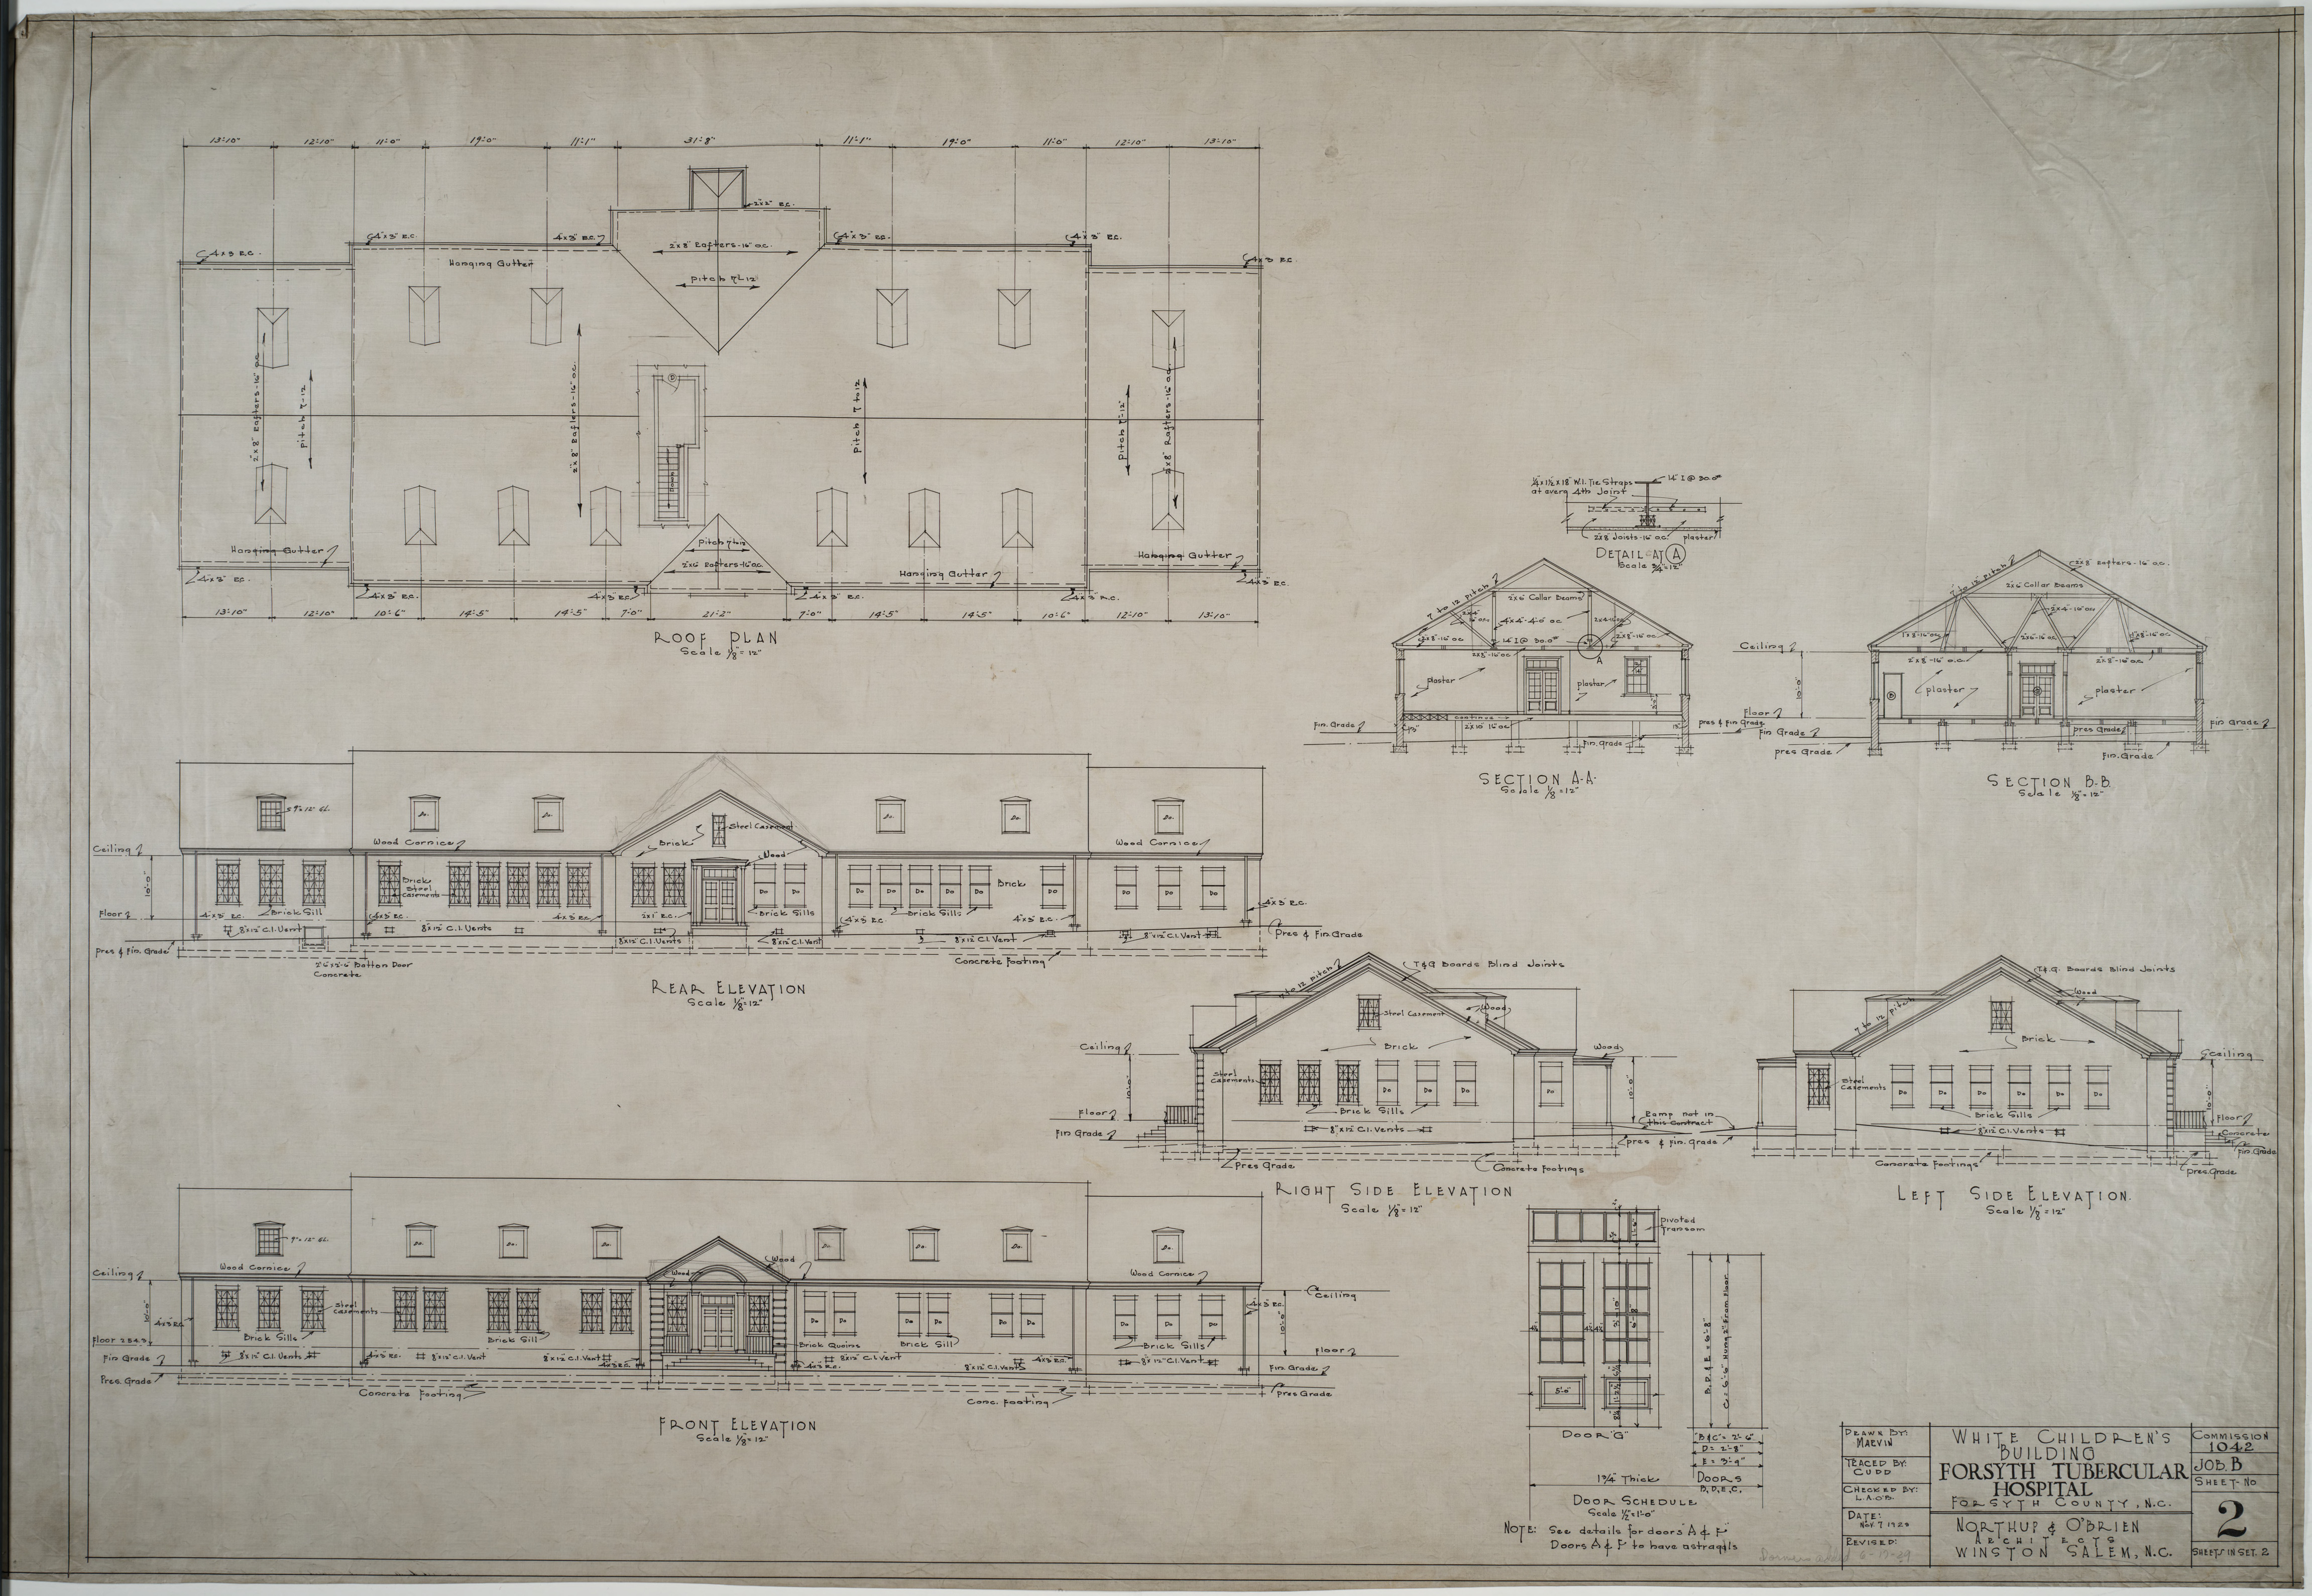 Plan Elevation Section Of Hospital : Roof plan elevations sections white children s building